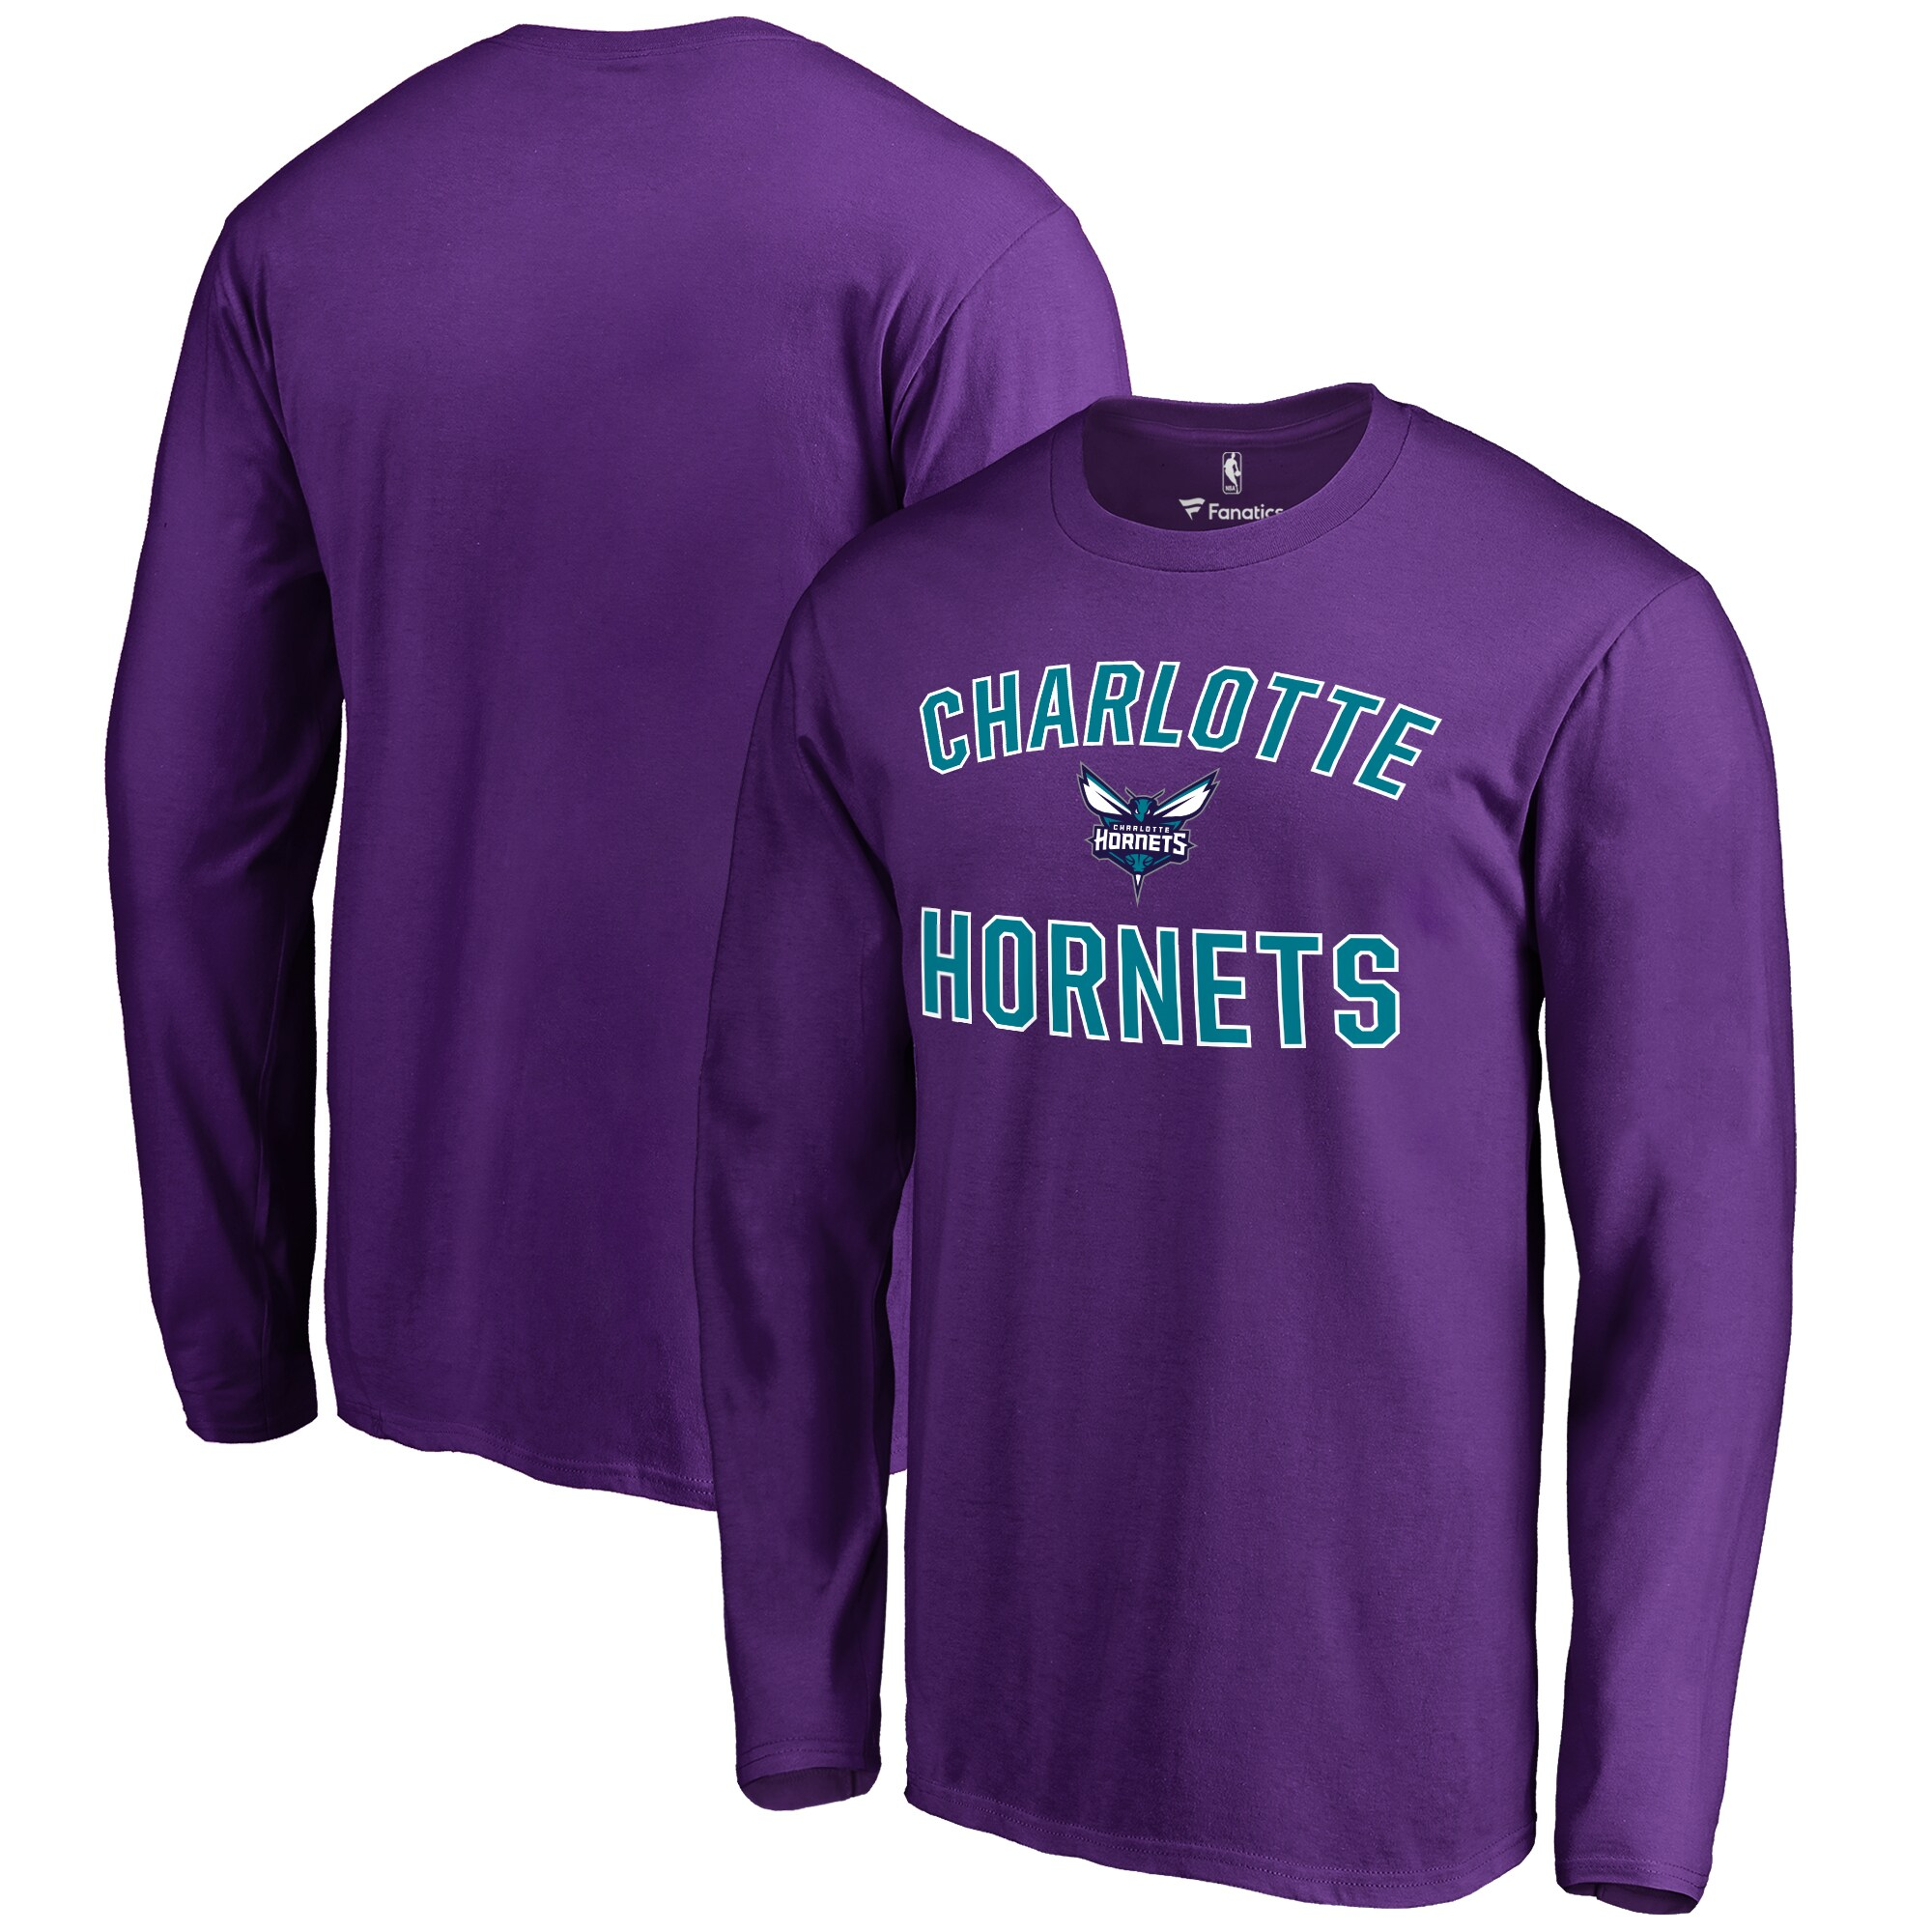 Charlotte Hornets Fanatics Branded Big & Tall Victory Arch Long Sleeve T-Shirt - Purple